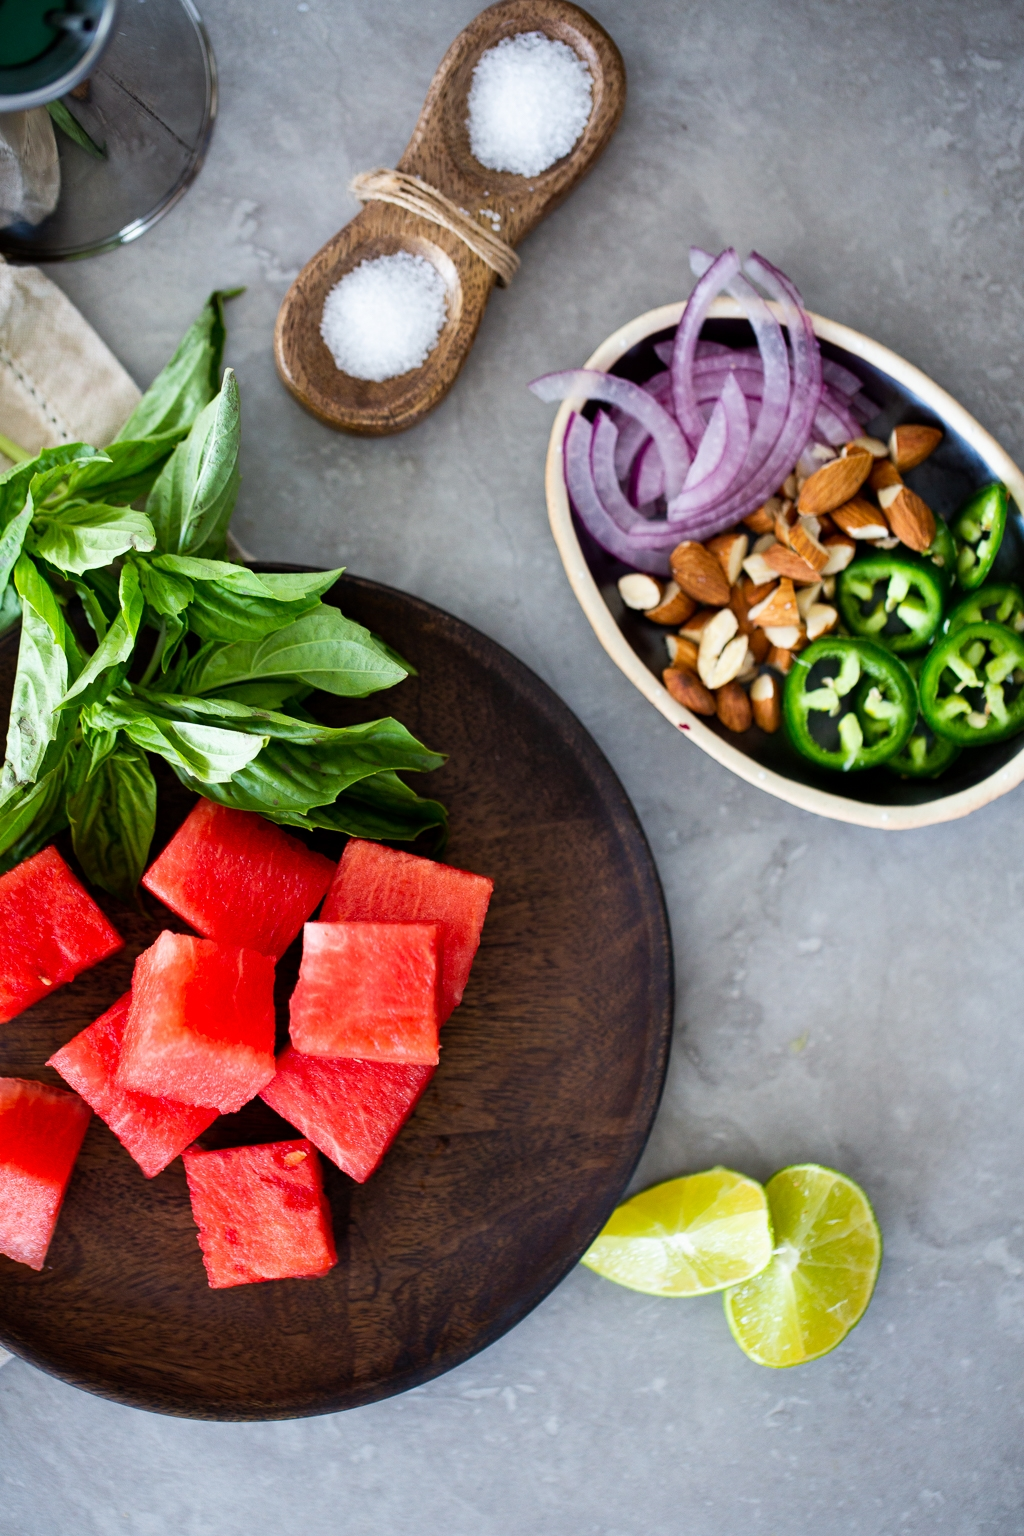 Watermelon, sliced onions, sliced chile, almonds and limes to prepare watermelon salad.